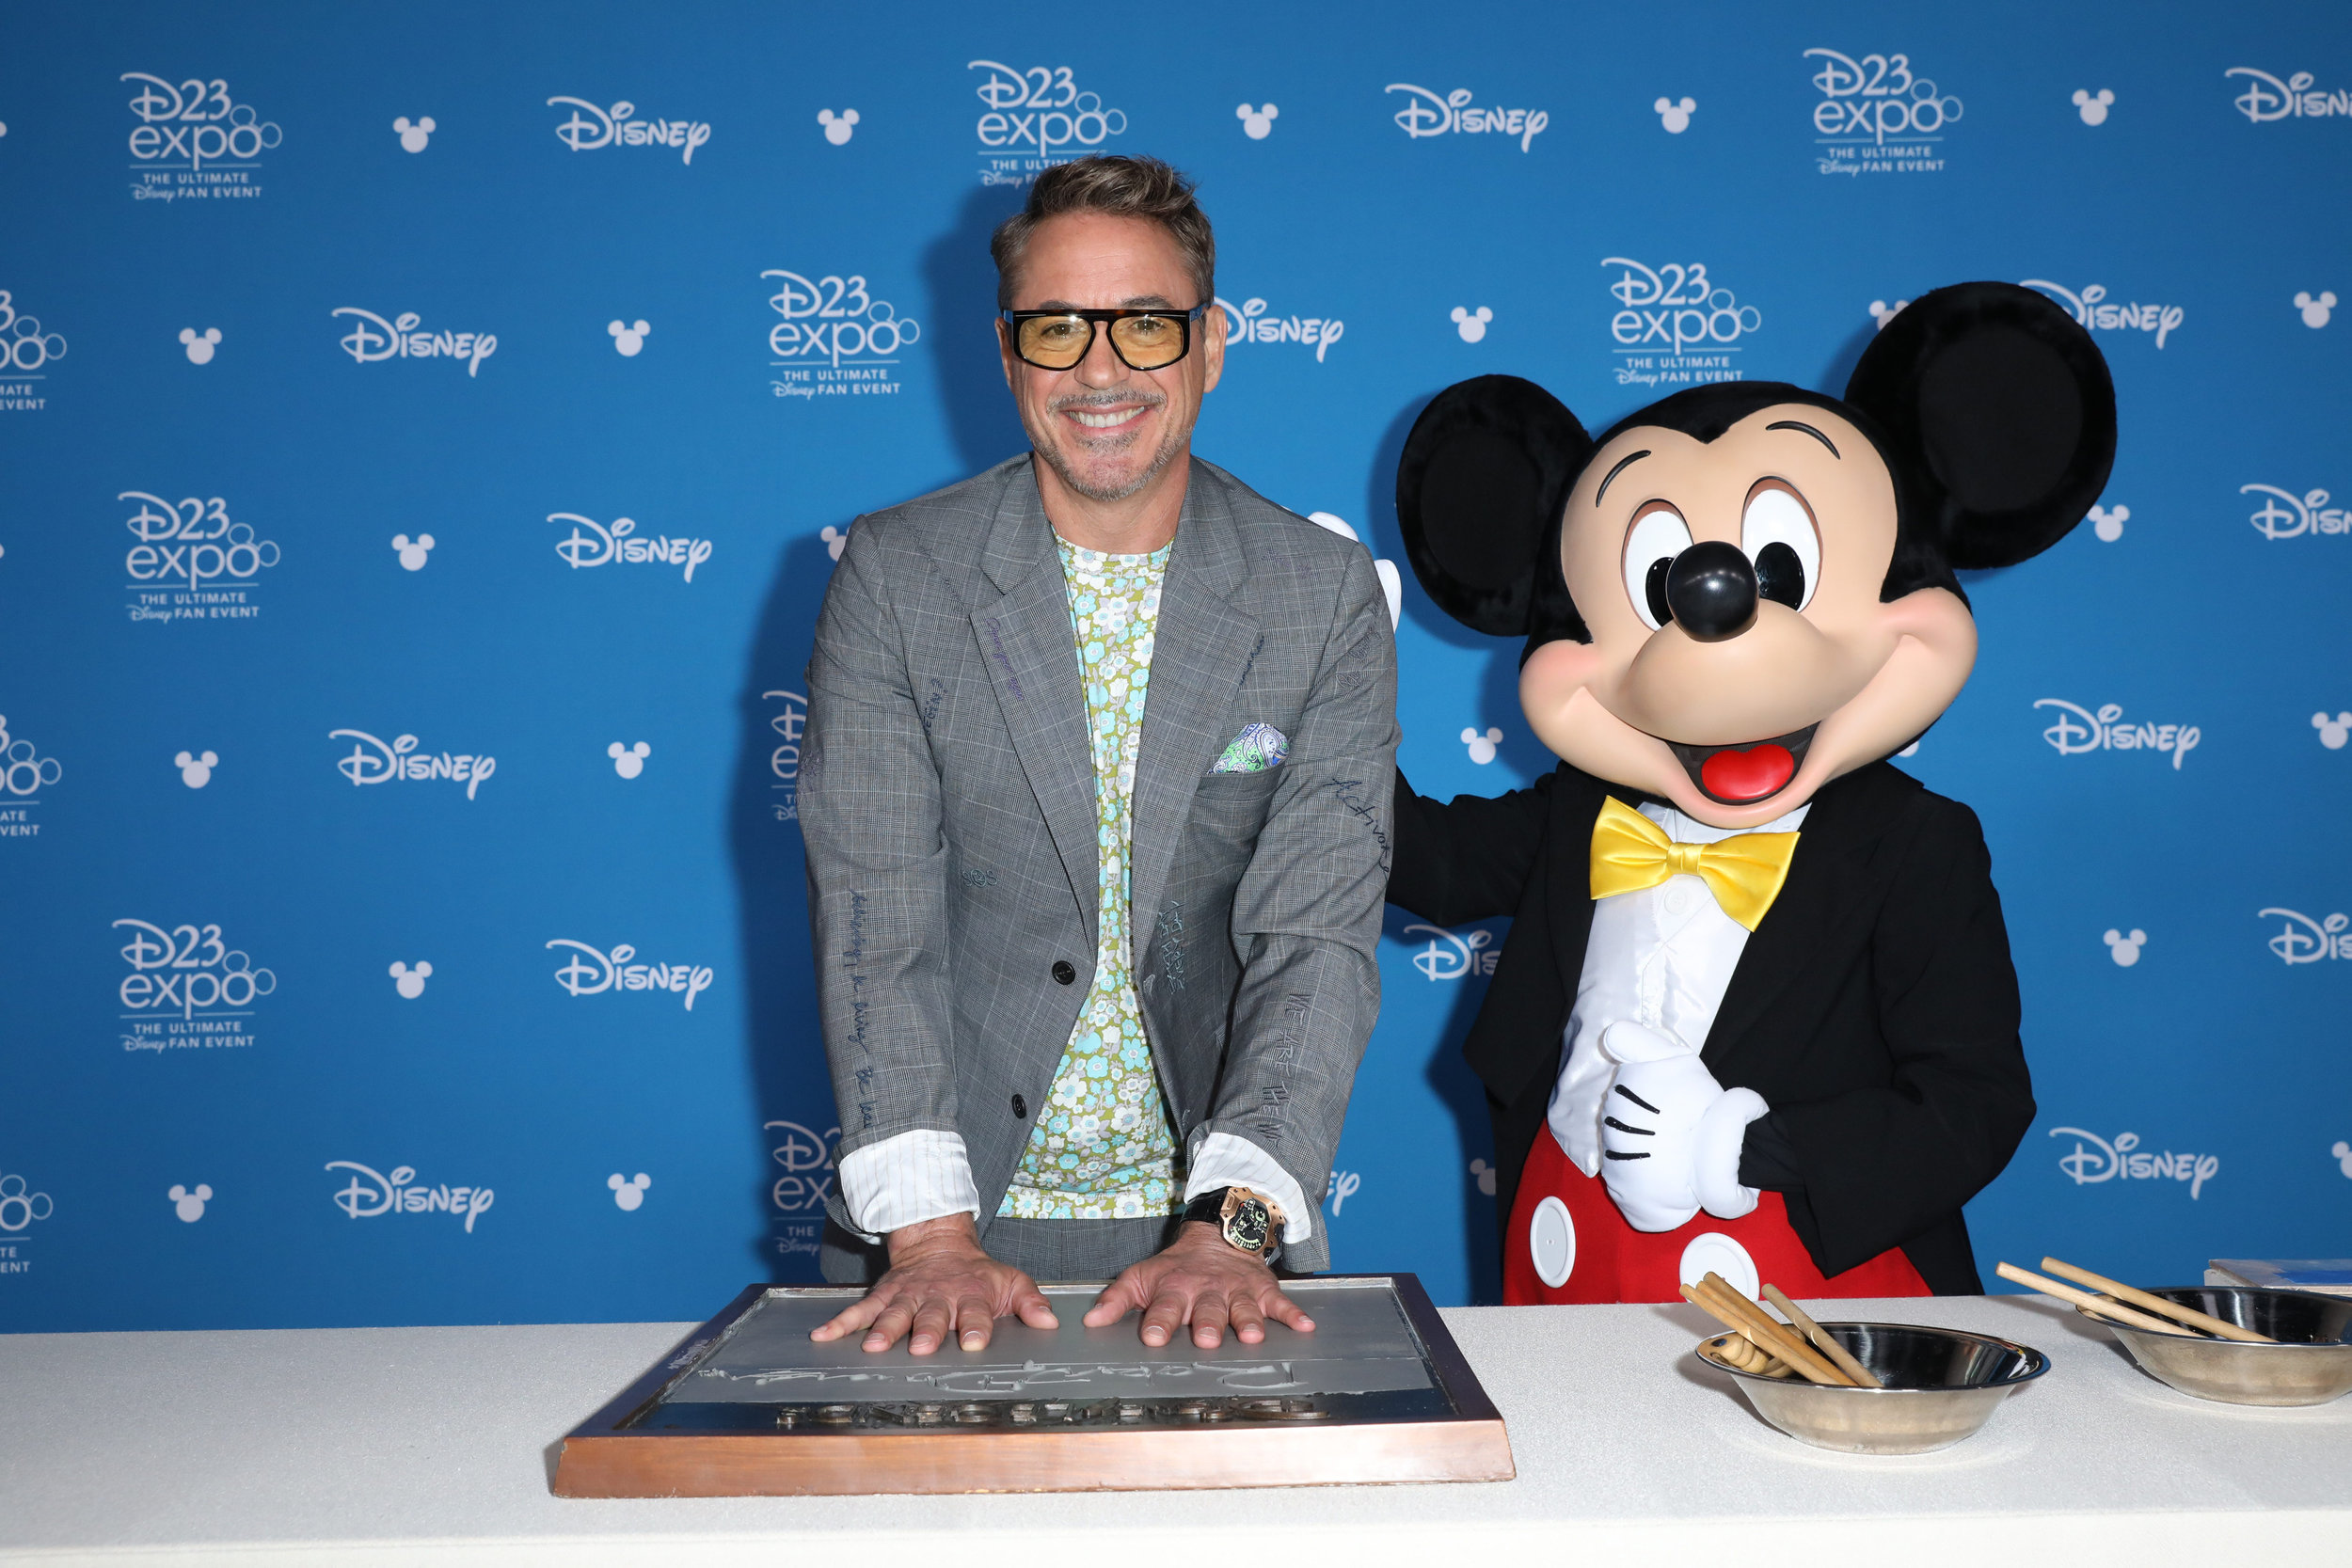 Robert Downey Jr. making his handprints with Mickey